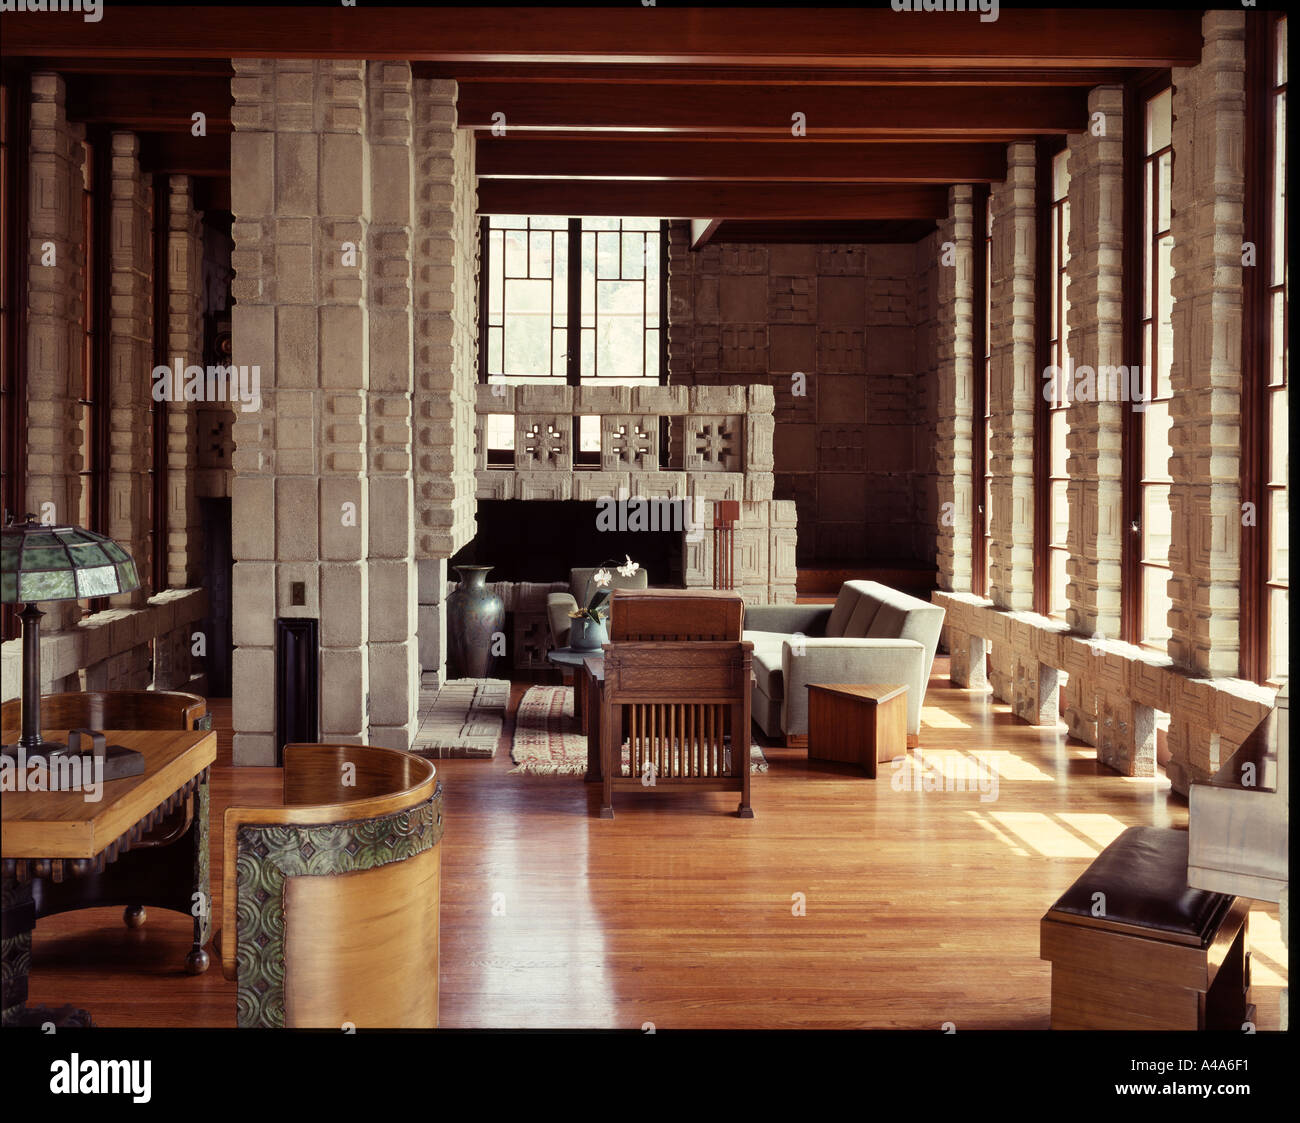 Storer house los angeles california 1923 living area architect stock photo 304881 alamy Frank lloyd wright the rooms interiors and decorative arts